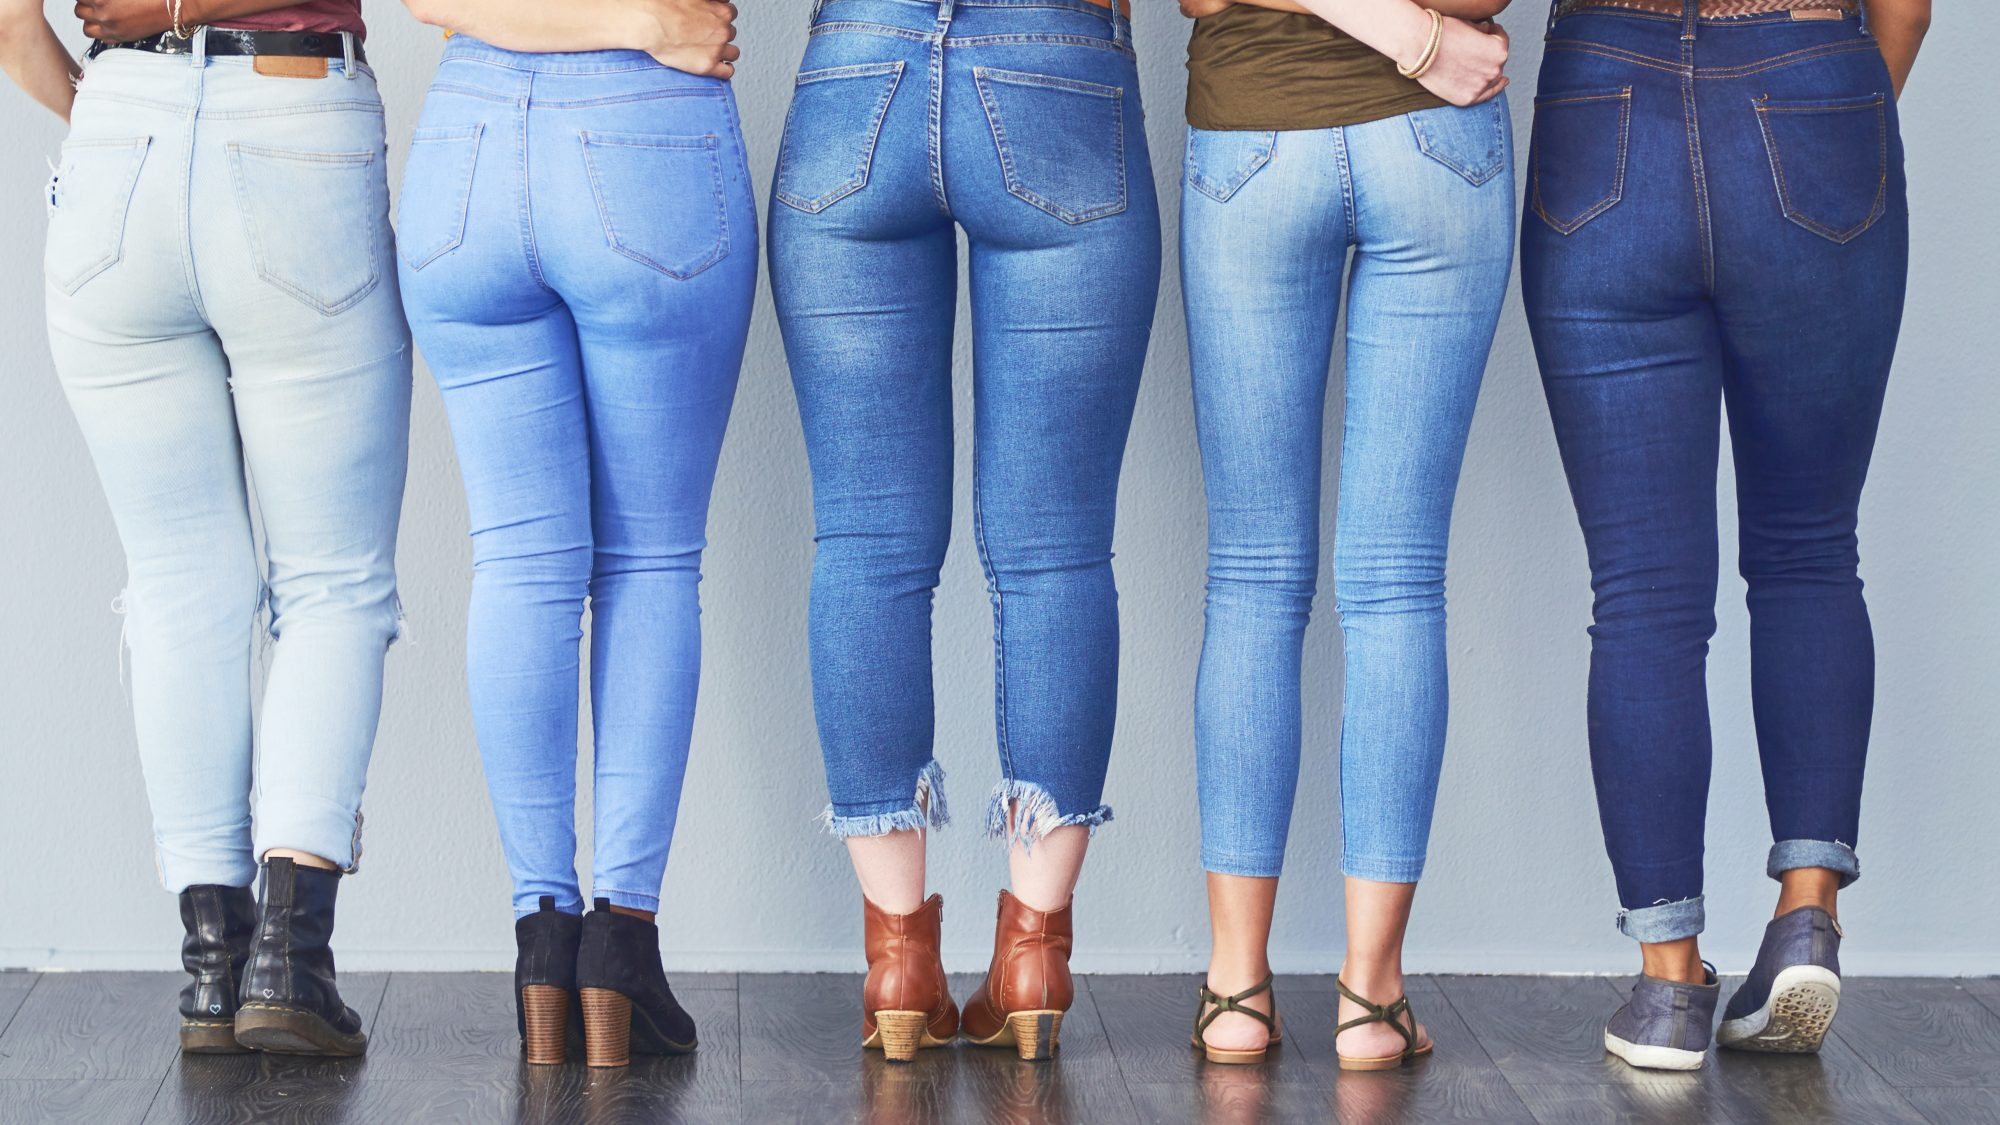 skinny-jeans-gen-z: rearview of several women wearing skinny jeans